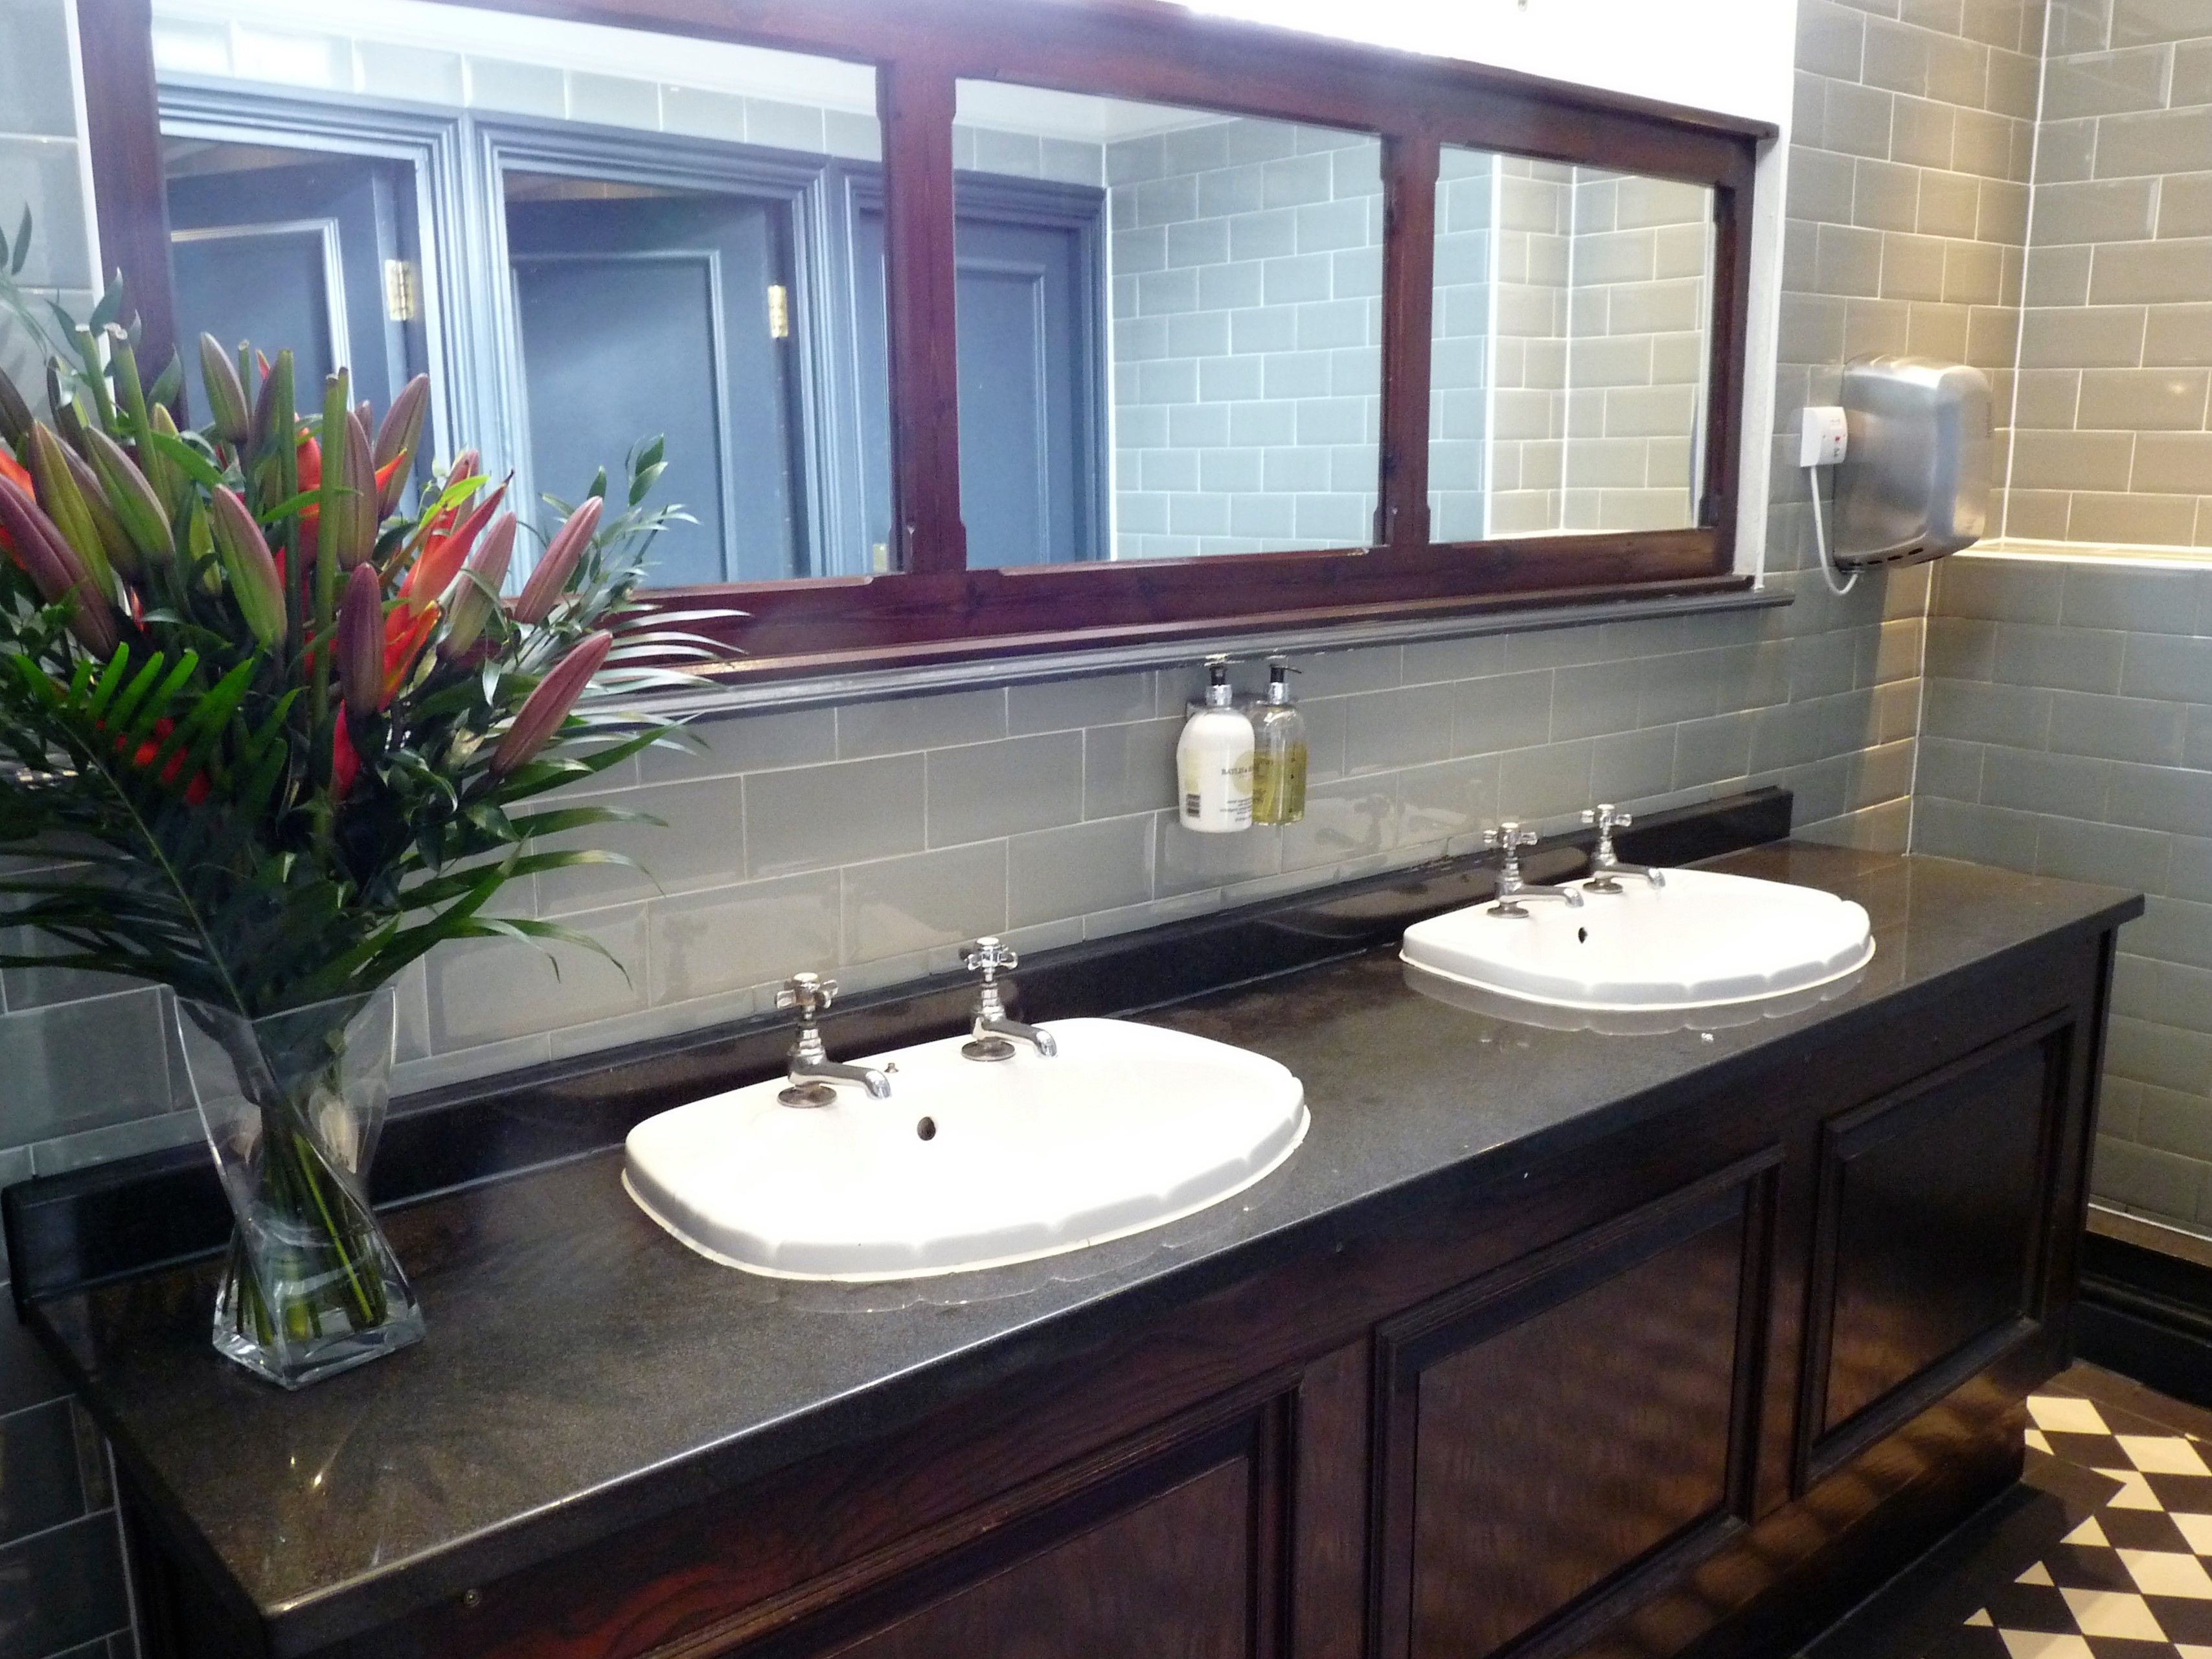 The Philharmonic Dining Rooms  WC se oras. The Philharmonic Dining Rooms  WC se oras   Liverpool   Pinterest